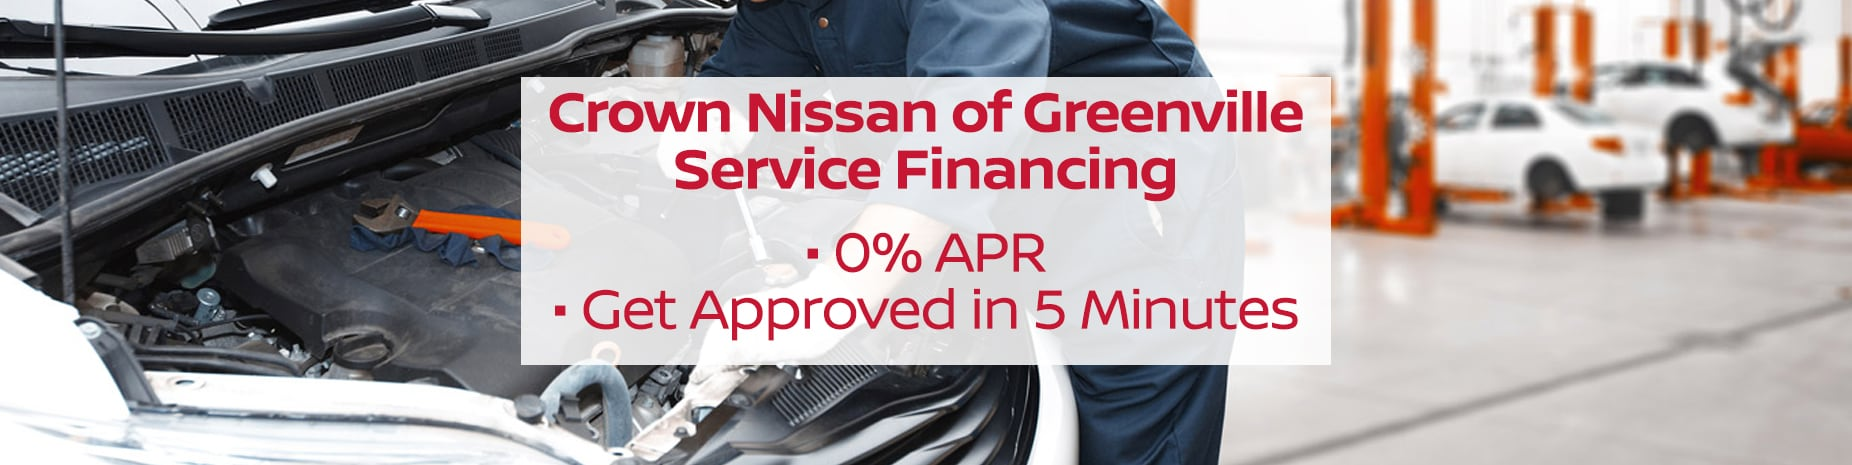 Service Financing Greenville